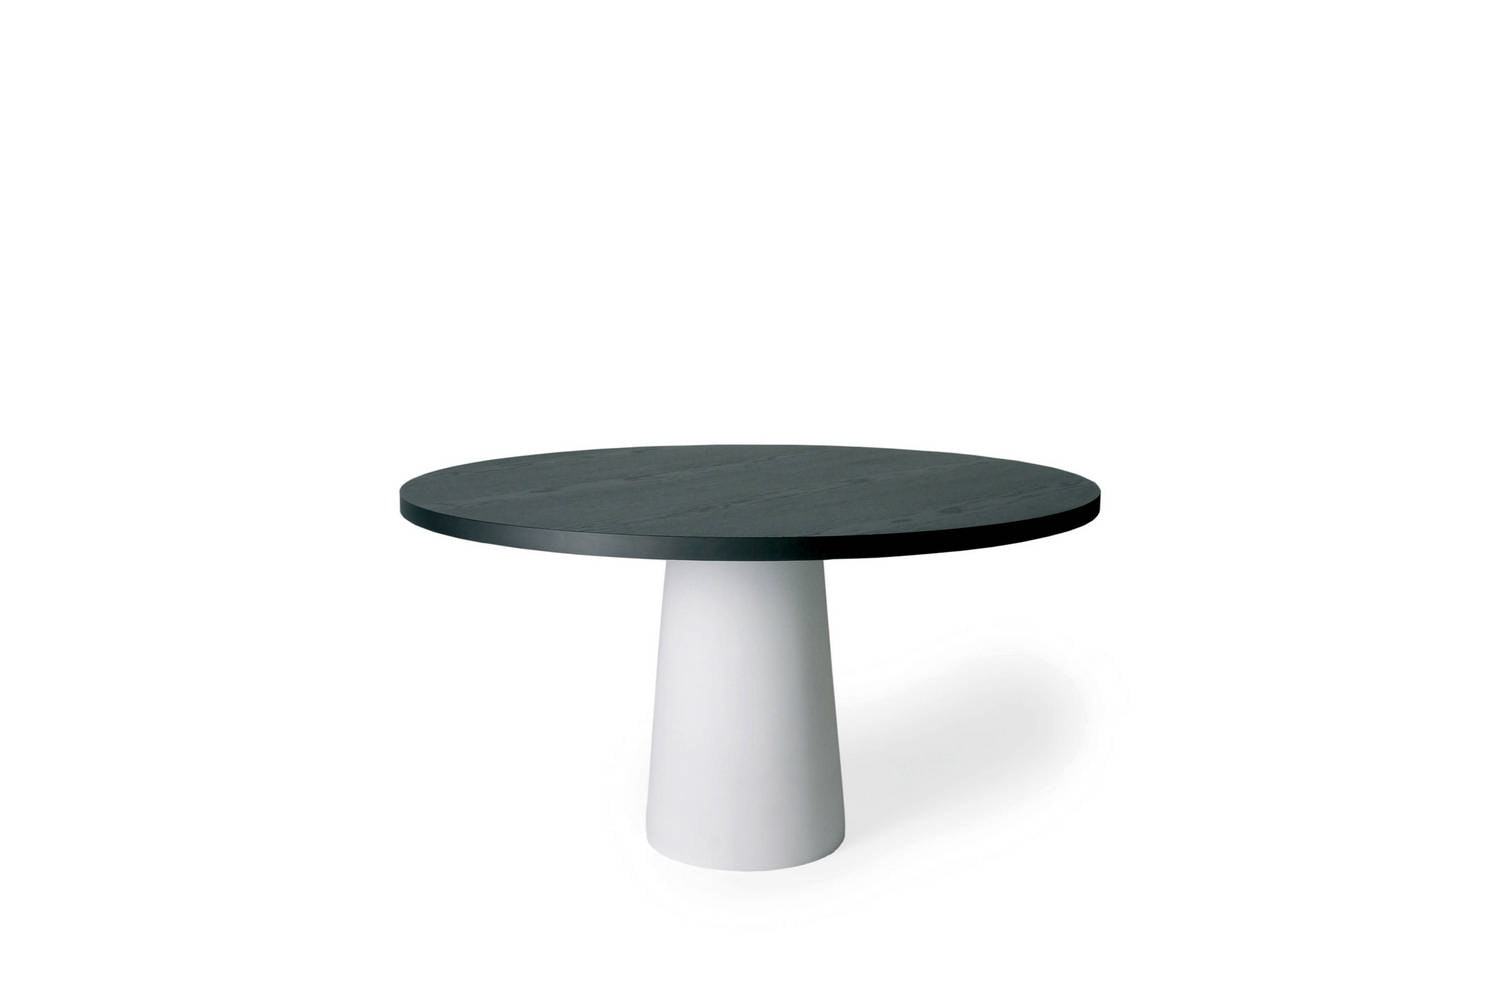 Container Table 7143 by Marcel Wanders for Moooi